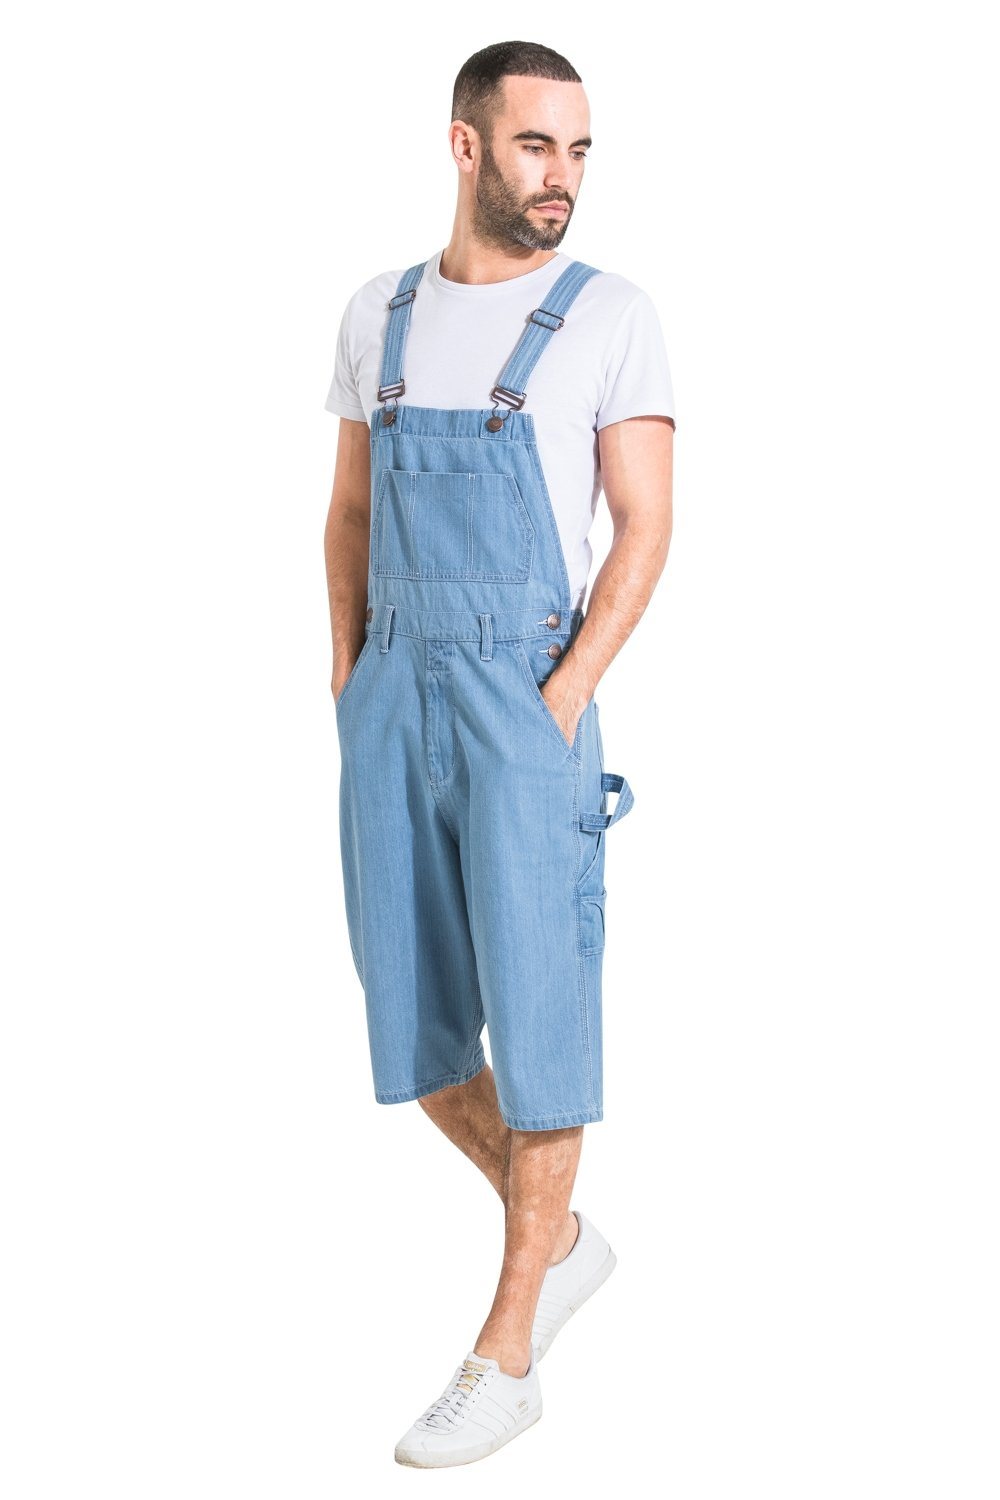 Mens Palewash Denim Dungaree Shorts Bib Overall Shorts for men USKEES